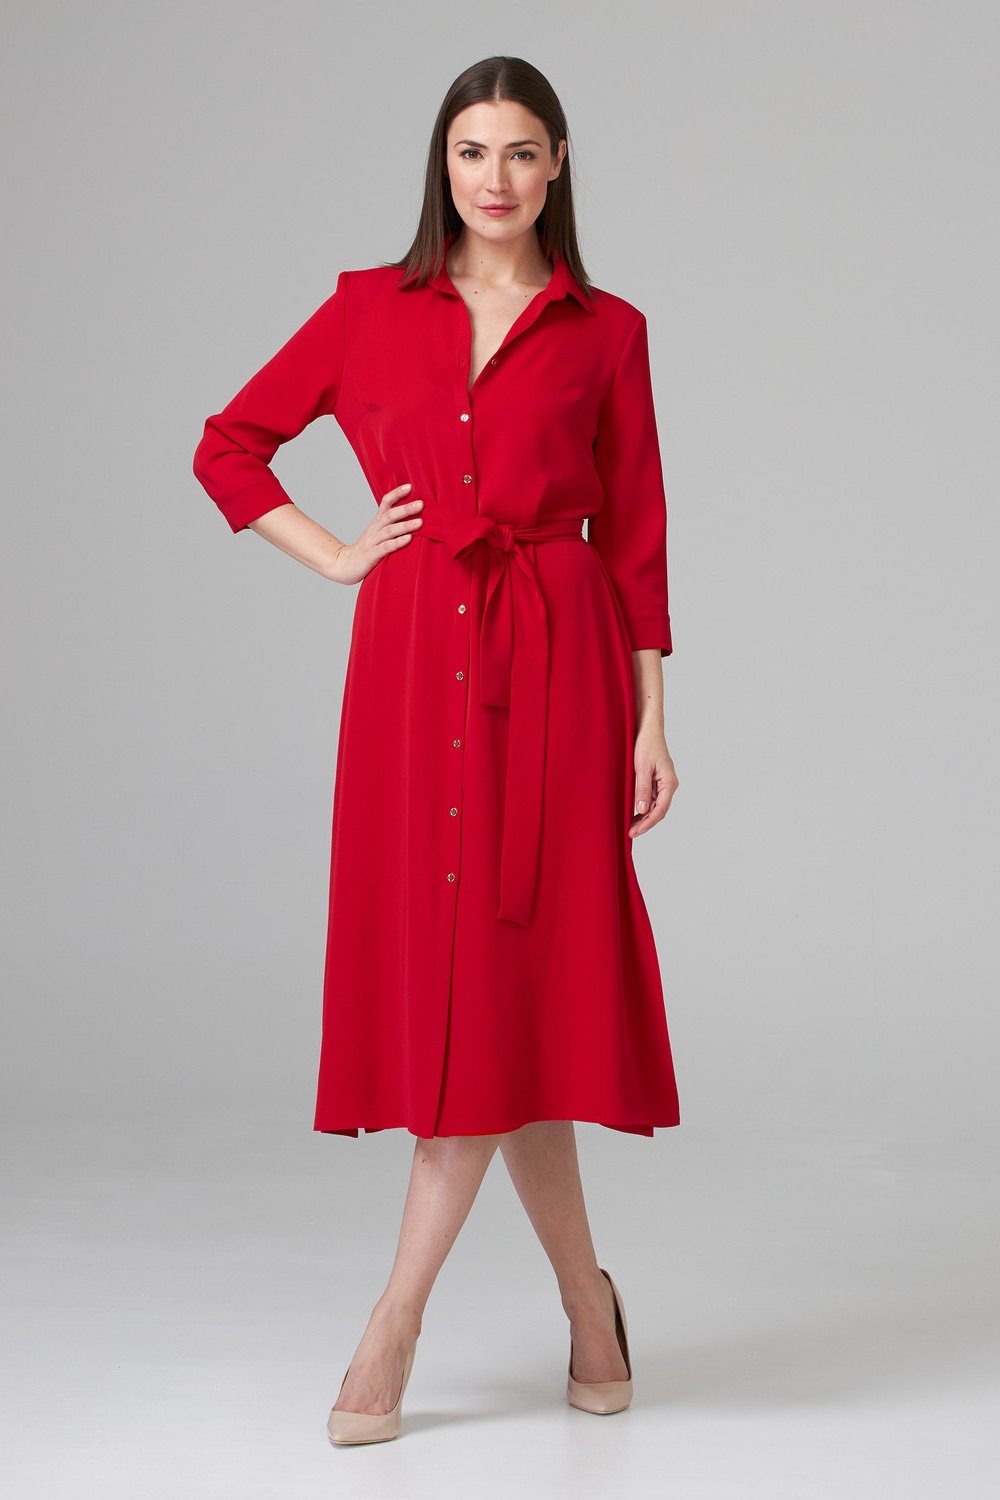 Joseph Ribkoff Robes Rouge A Levres 173 Style 201276